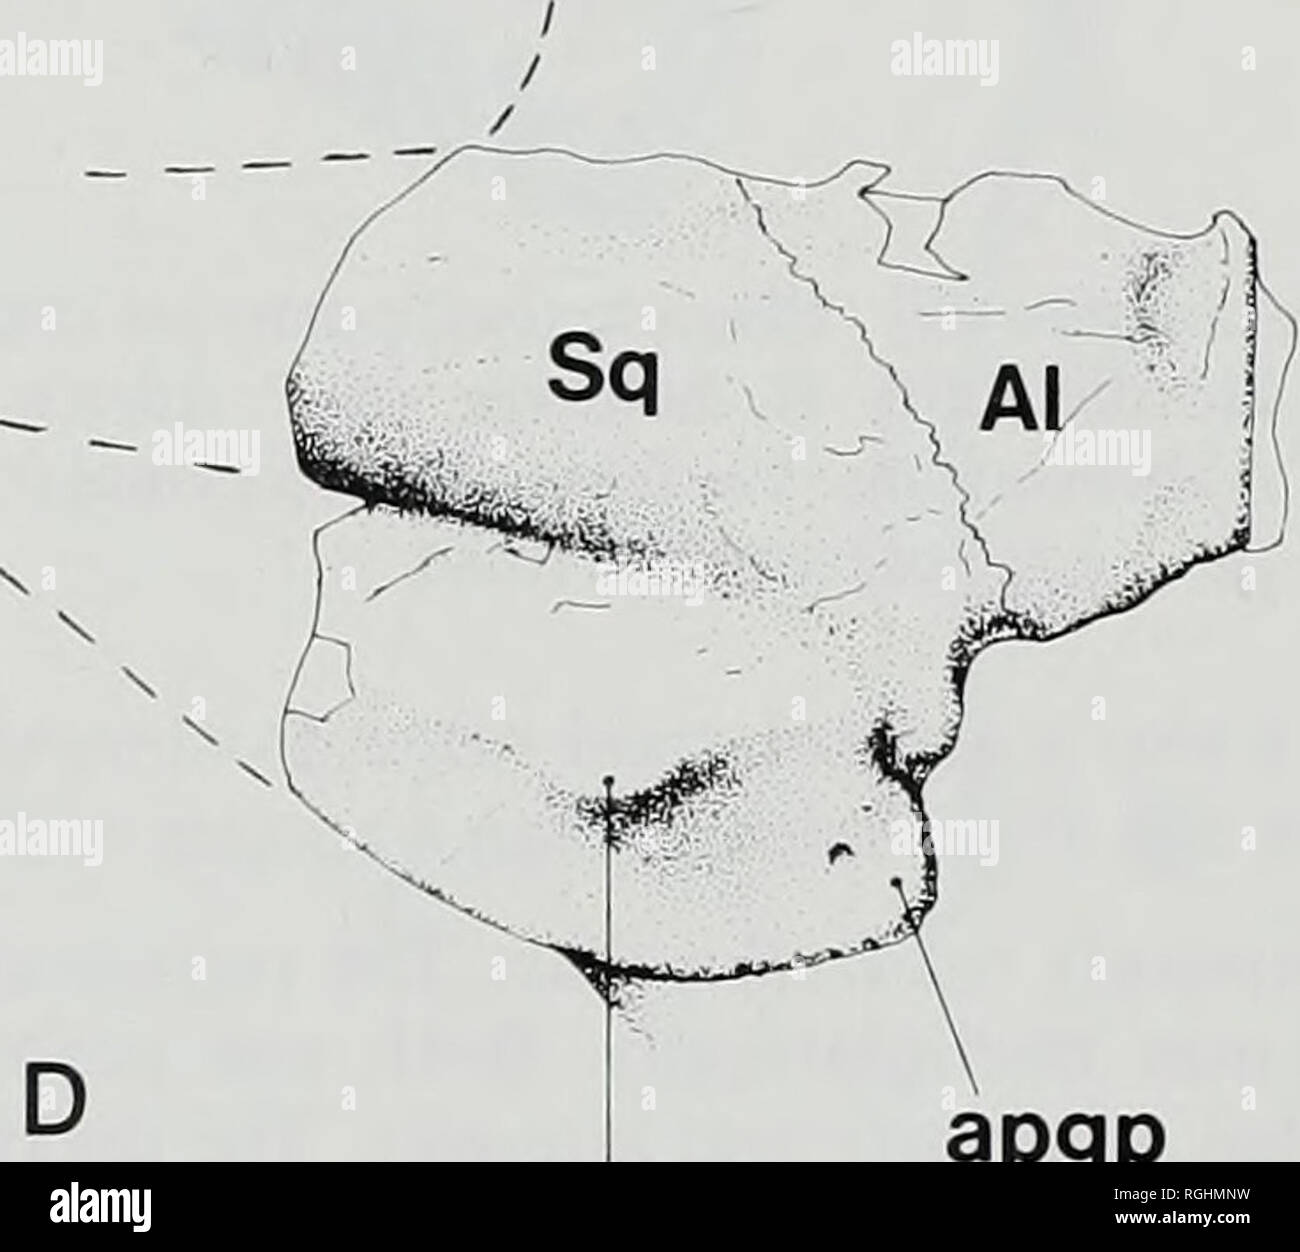 . Bulletin of the British Museum (Natural History), Geology. B apgp mpgp Sq mpgp aP9P. mpgp apgp Text-figure 48 Plagiolophus, glenoid region. A-C, holotype of Plagiolophus curtisi curtisi sp. & subsp. nov. (M26176) from Barton Cliff. D, P. fraasi Meyer (Ml733) from the Phosphorites du Quercy. A, lateral view of right glenoid region; B, posterior view of right glenoid region; C, ventral view shown as right glenoid region, but composite of right and left; D, ventral view of left glenoid region (reversed). Abbreviations: Al = alisphenoid; apgp = accessory postglenoid process; gf= glenoid foss Stock Photo